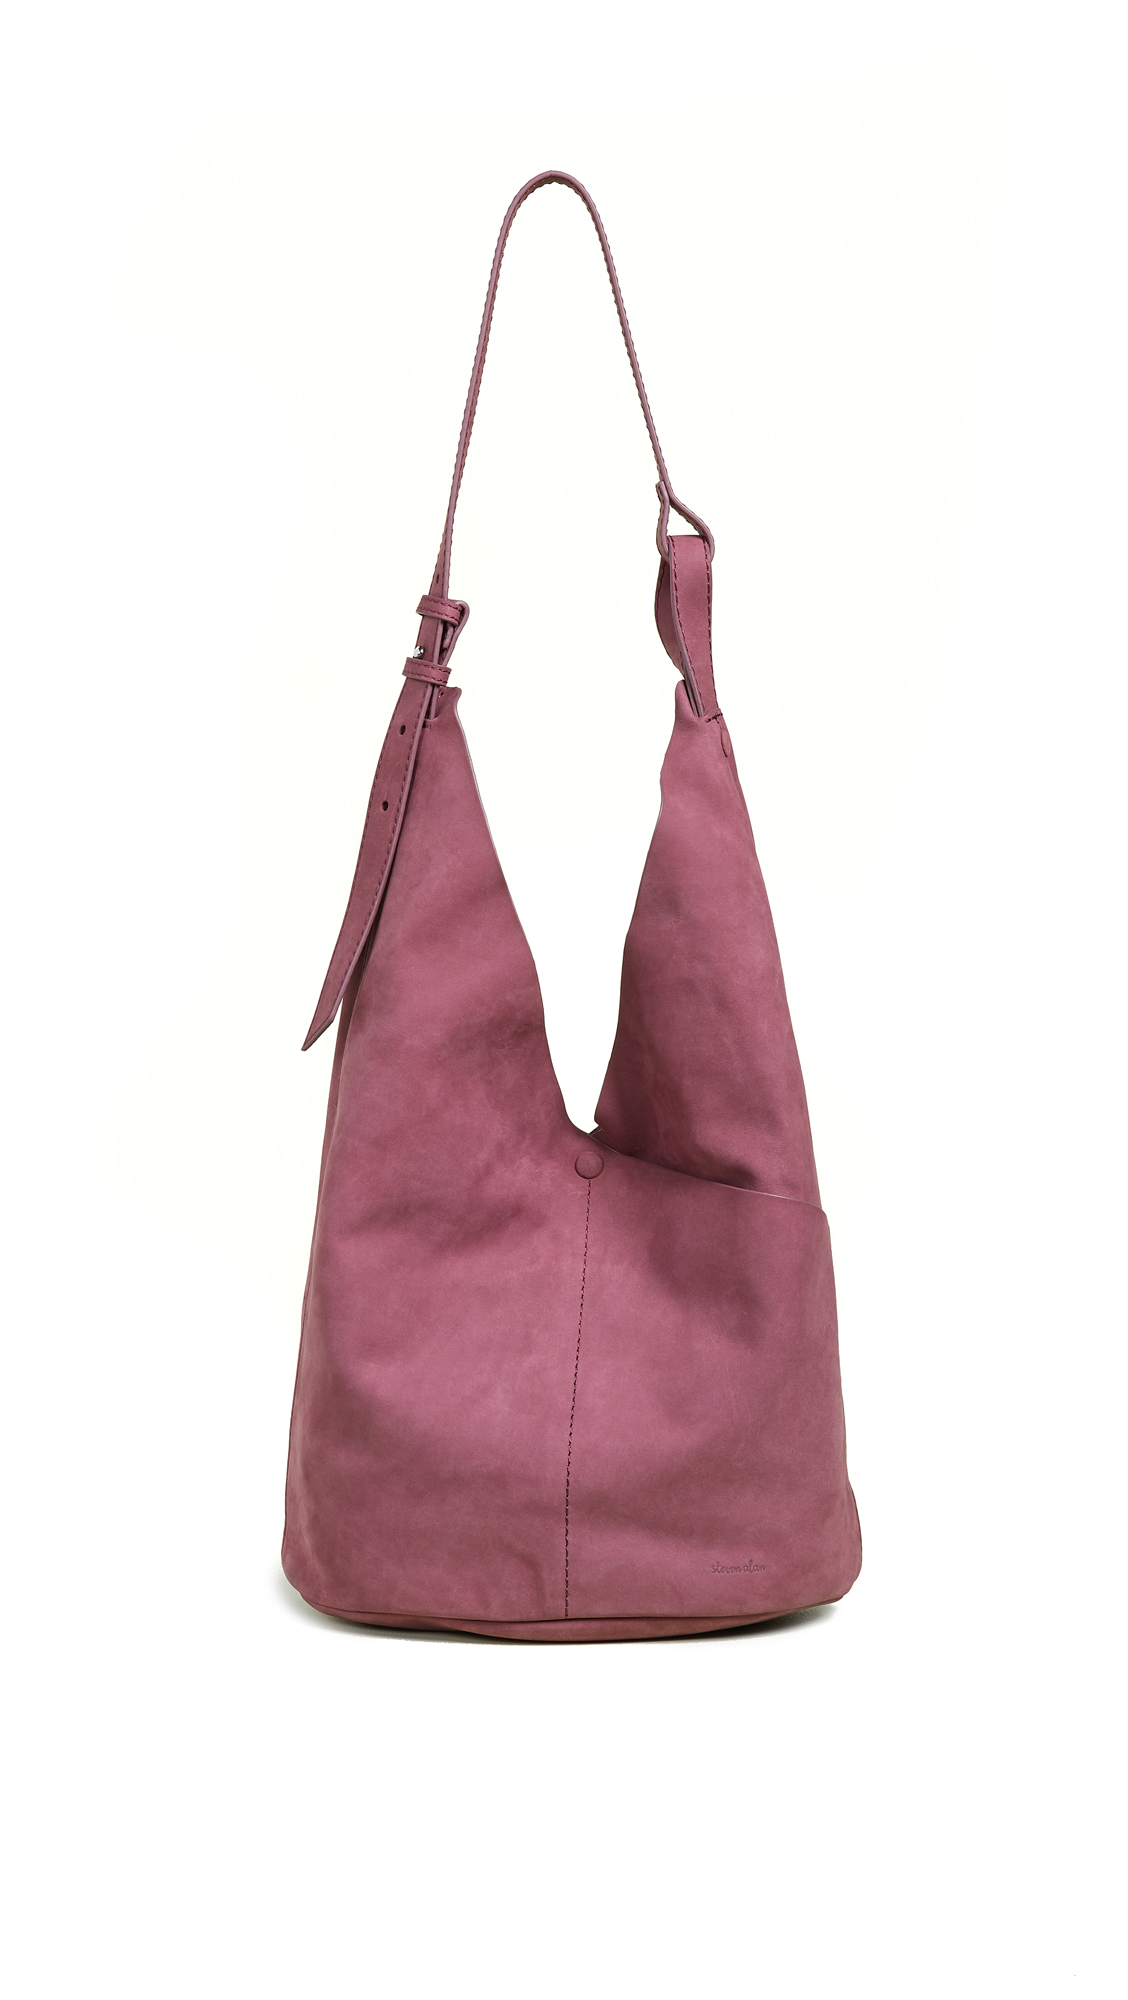 ETTA HOBO BAG